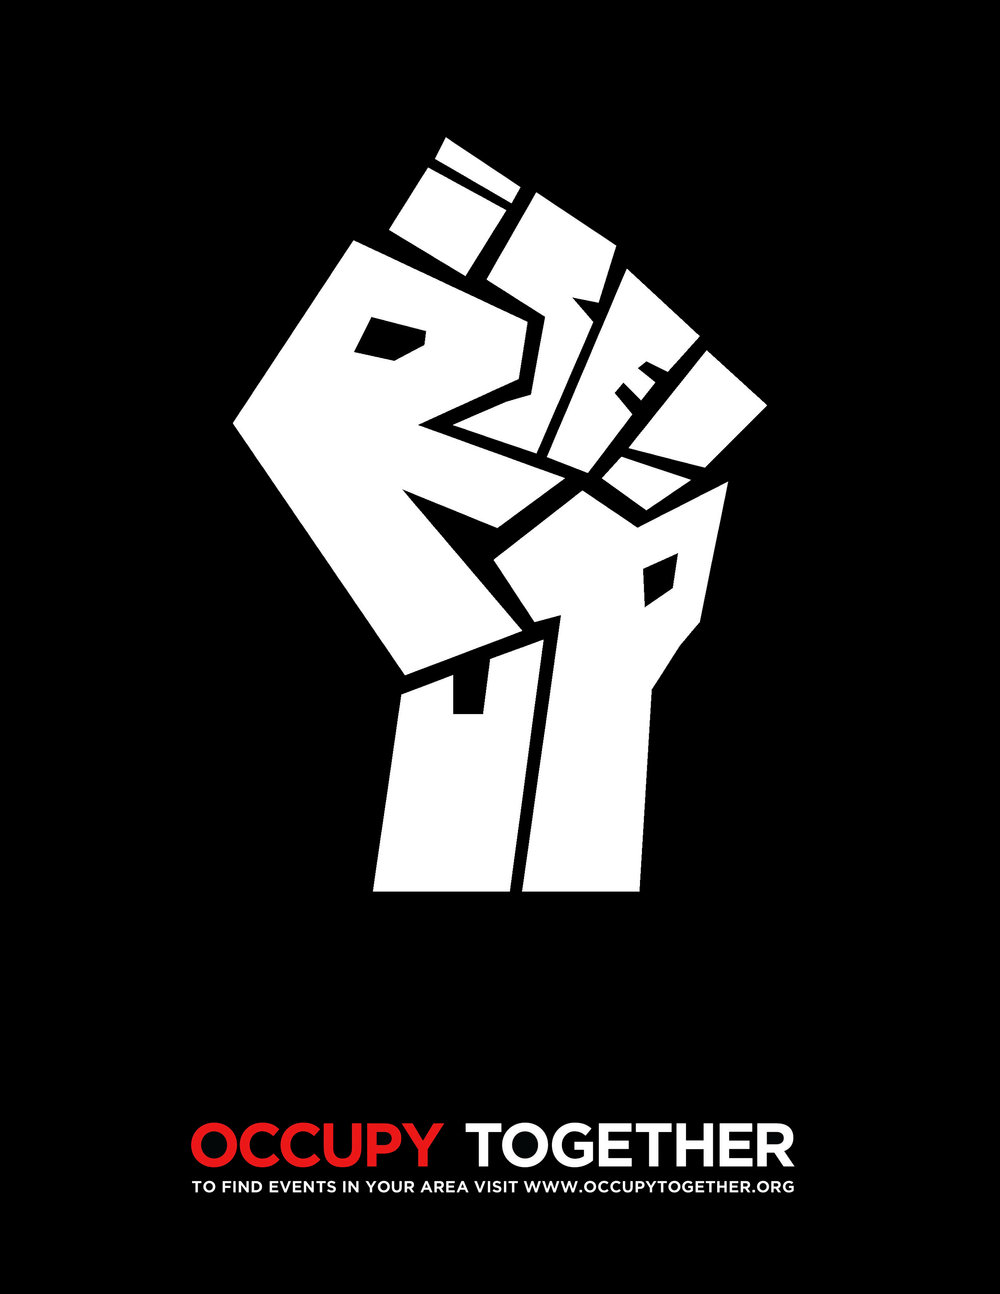 occupy-together-blk.jpg